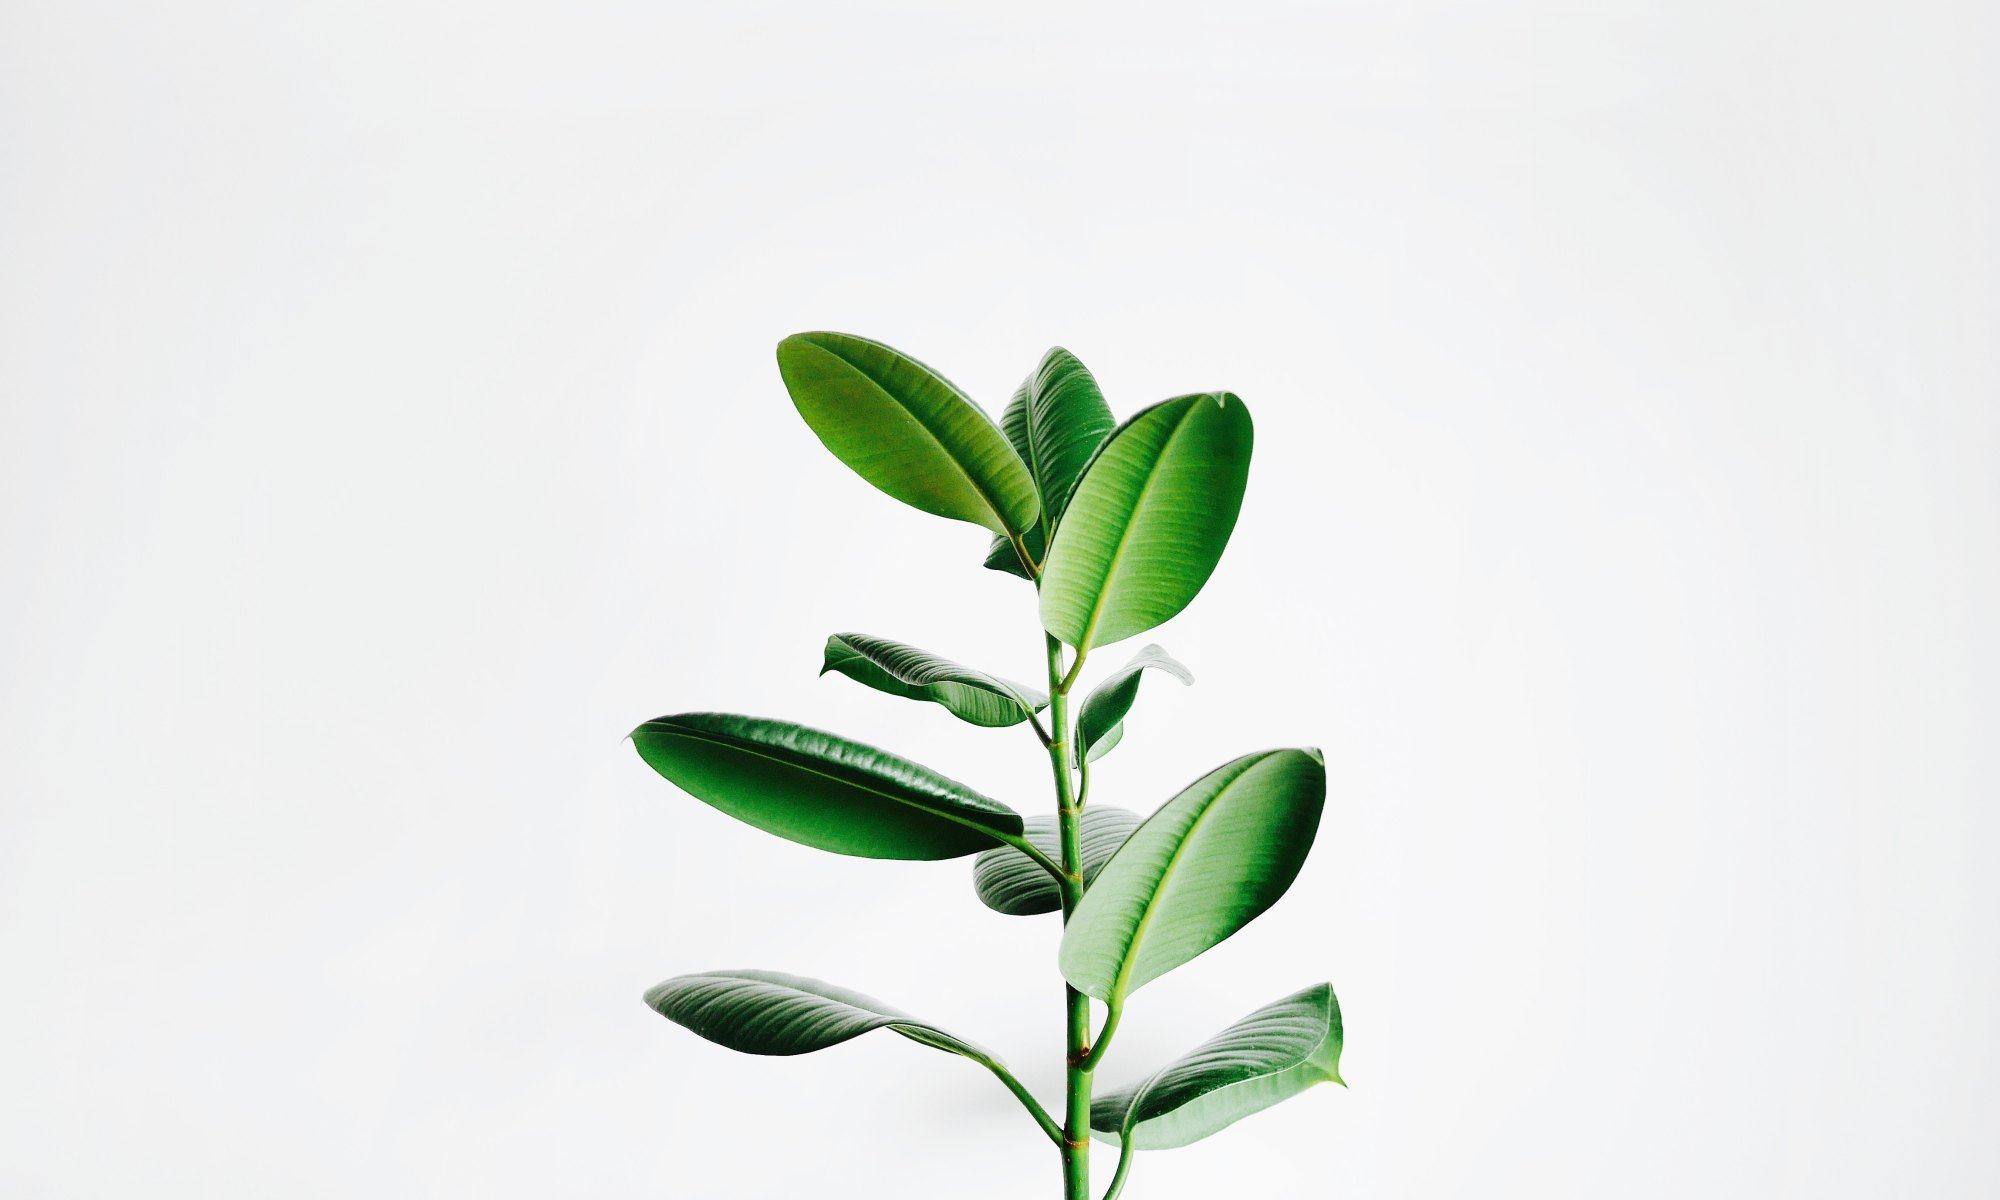 Plant against white background